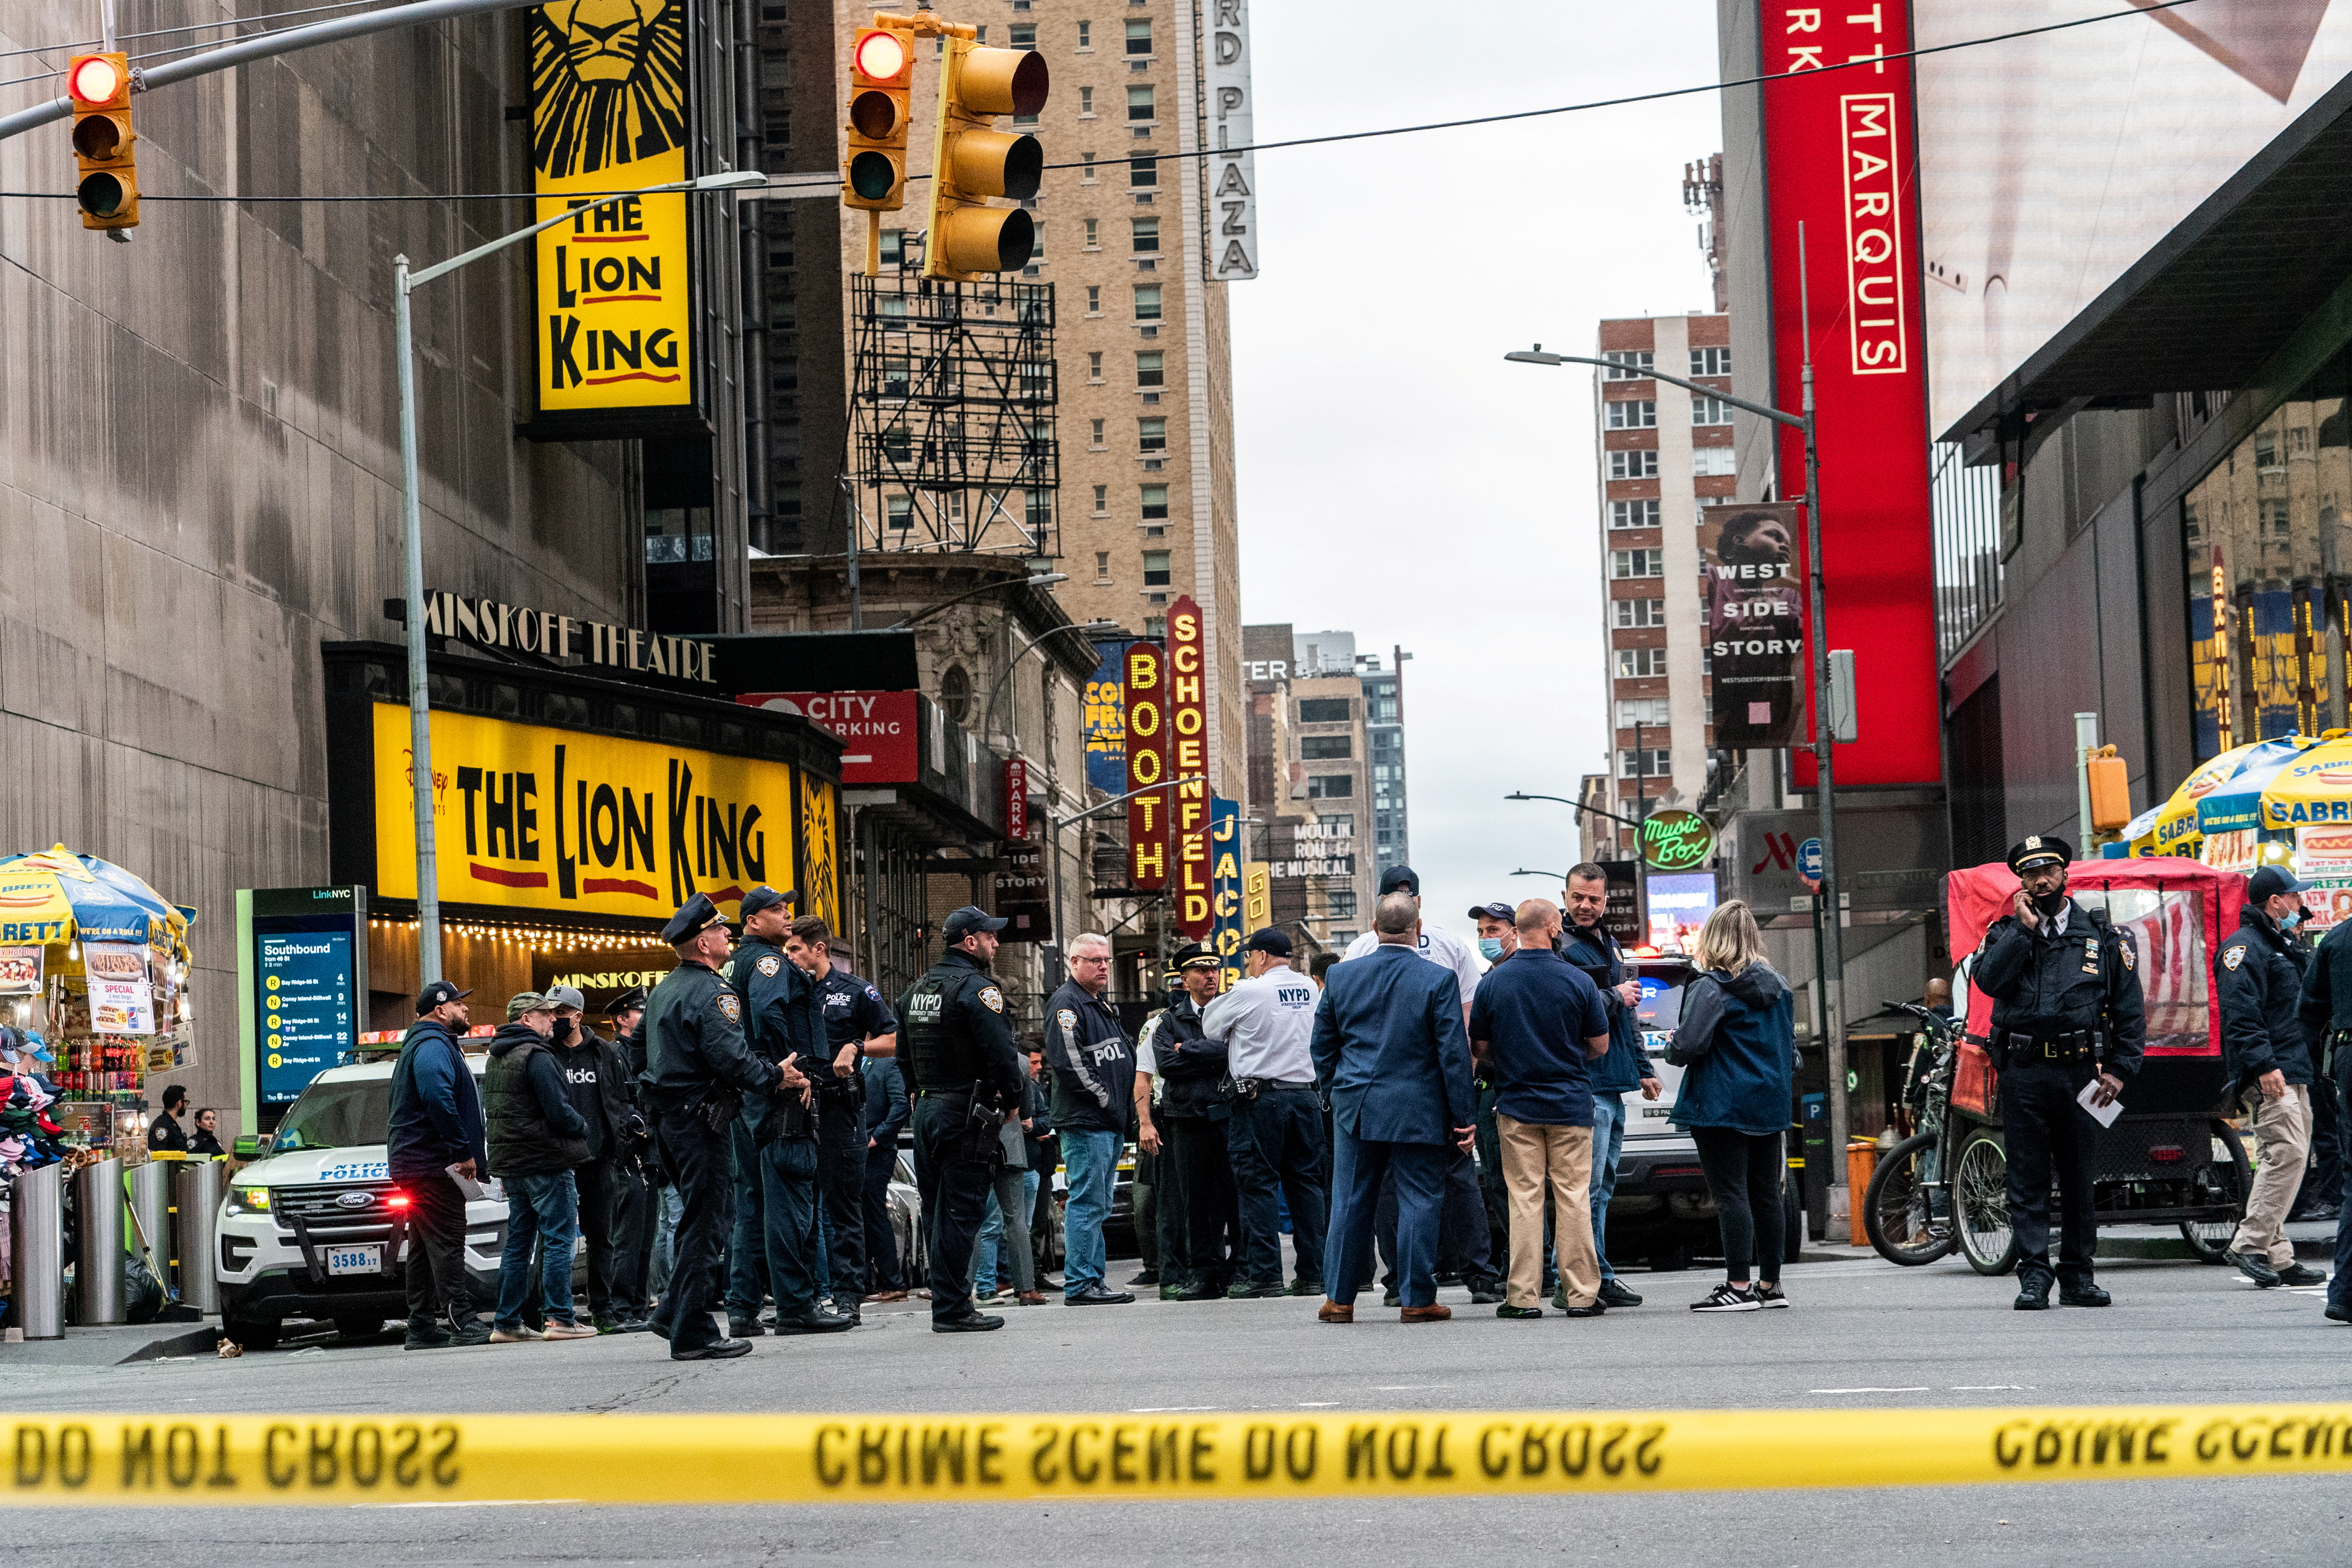 New York City police officers stand guard after a shooting incident in Times Square, New York, U.S., May 8, 2021. REUTERS/Jeenah Moon